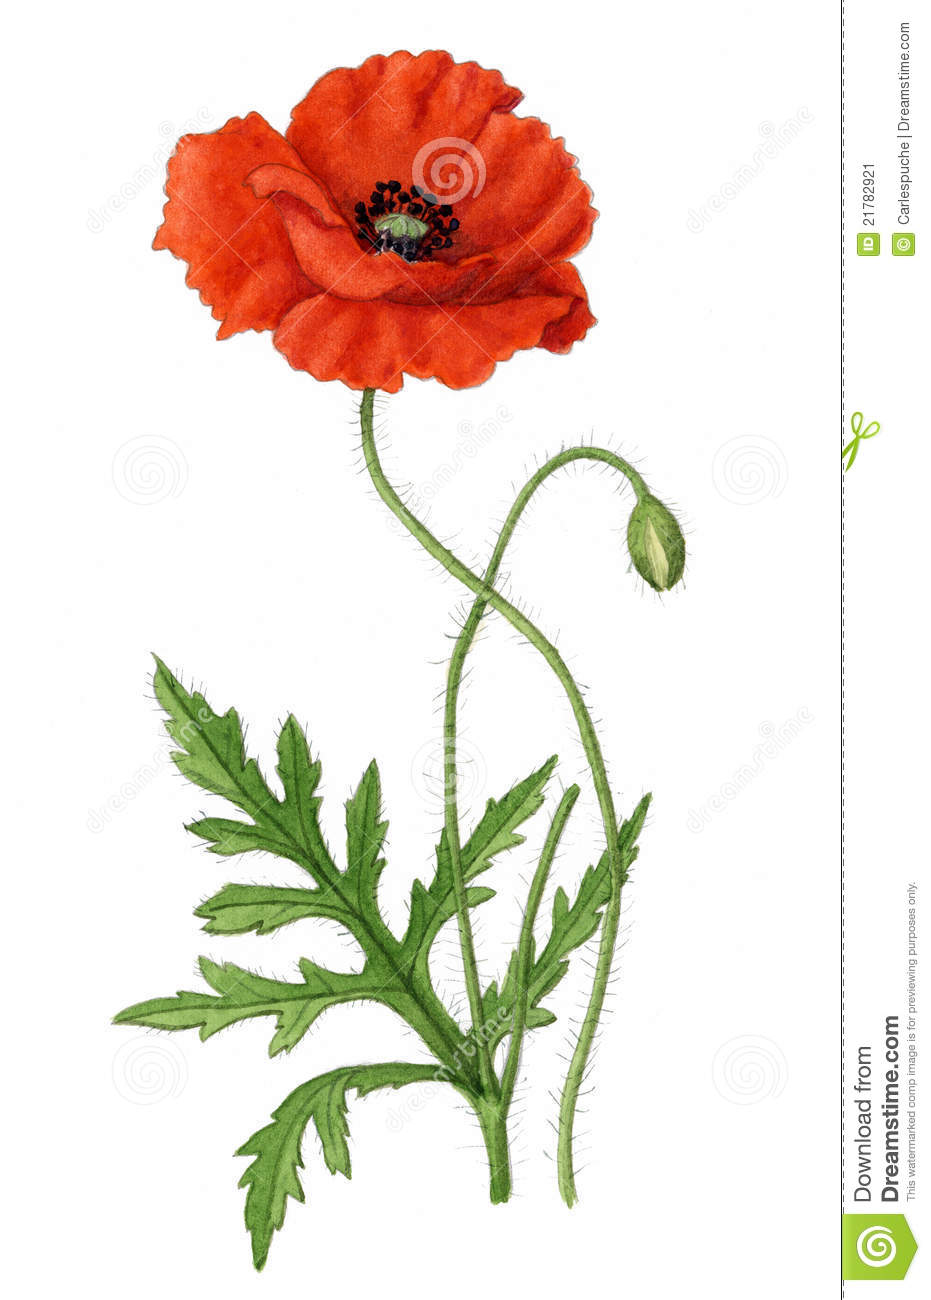 Drawn poppy vintage Open leaves closed an open